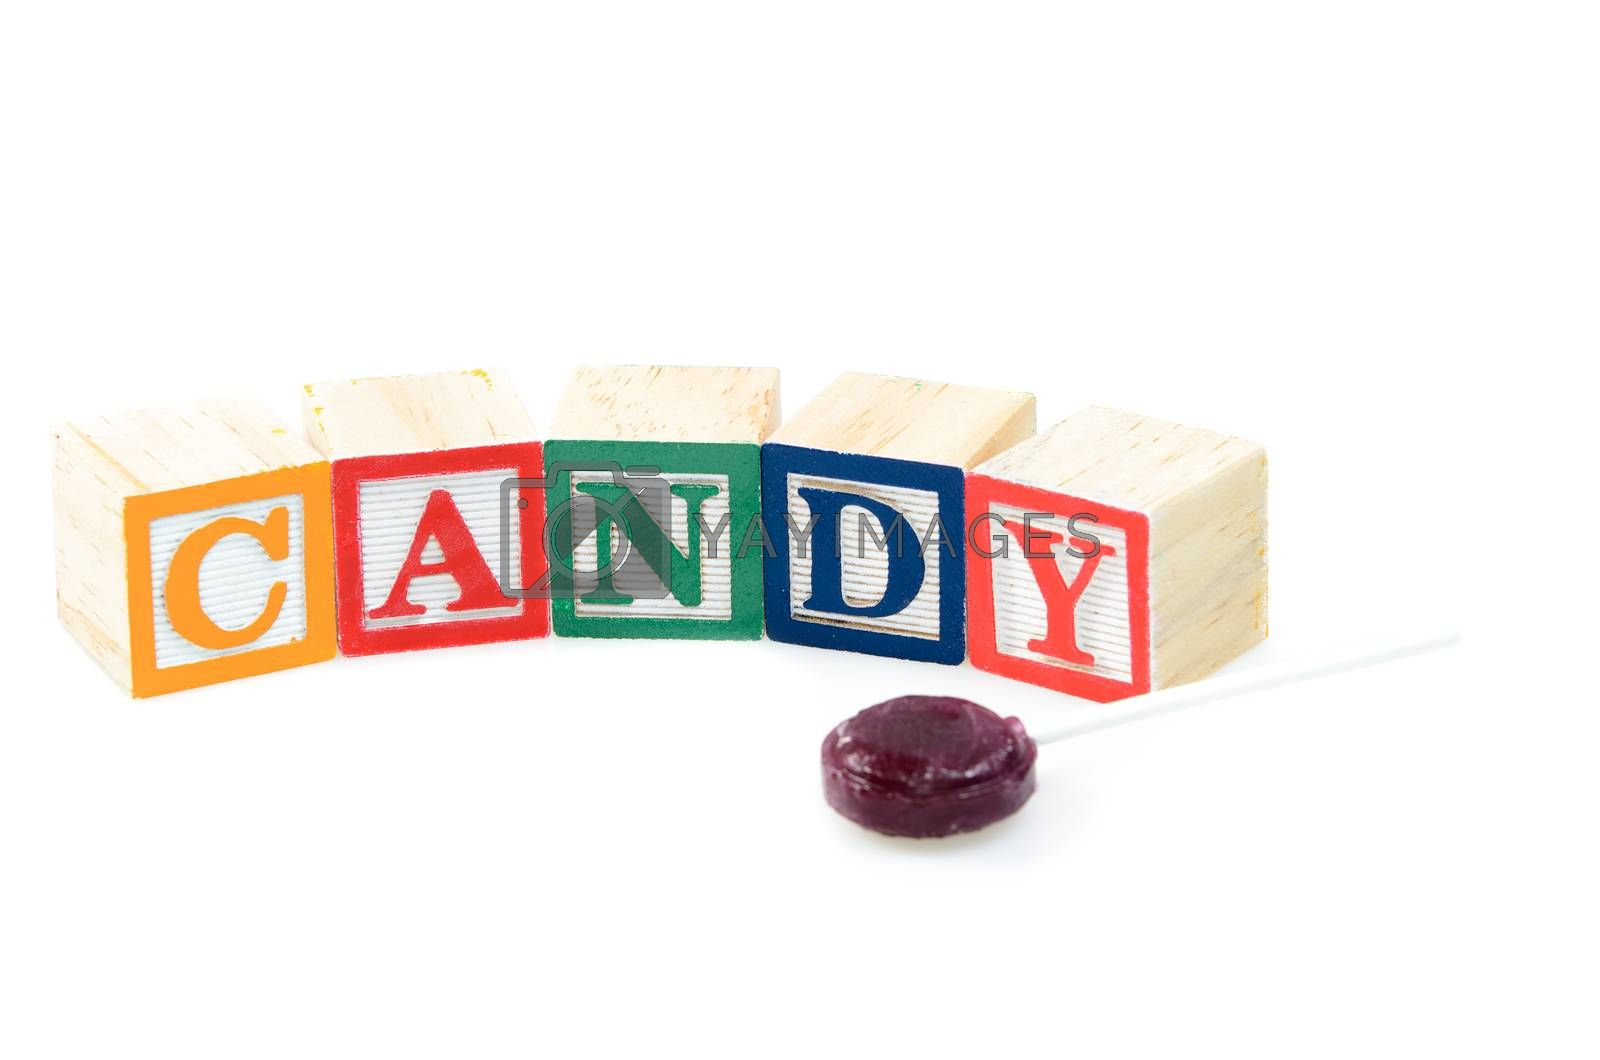 Baby blocks spelling candy. Isolated on a white background.